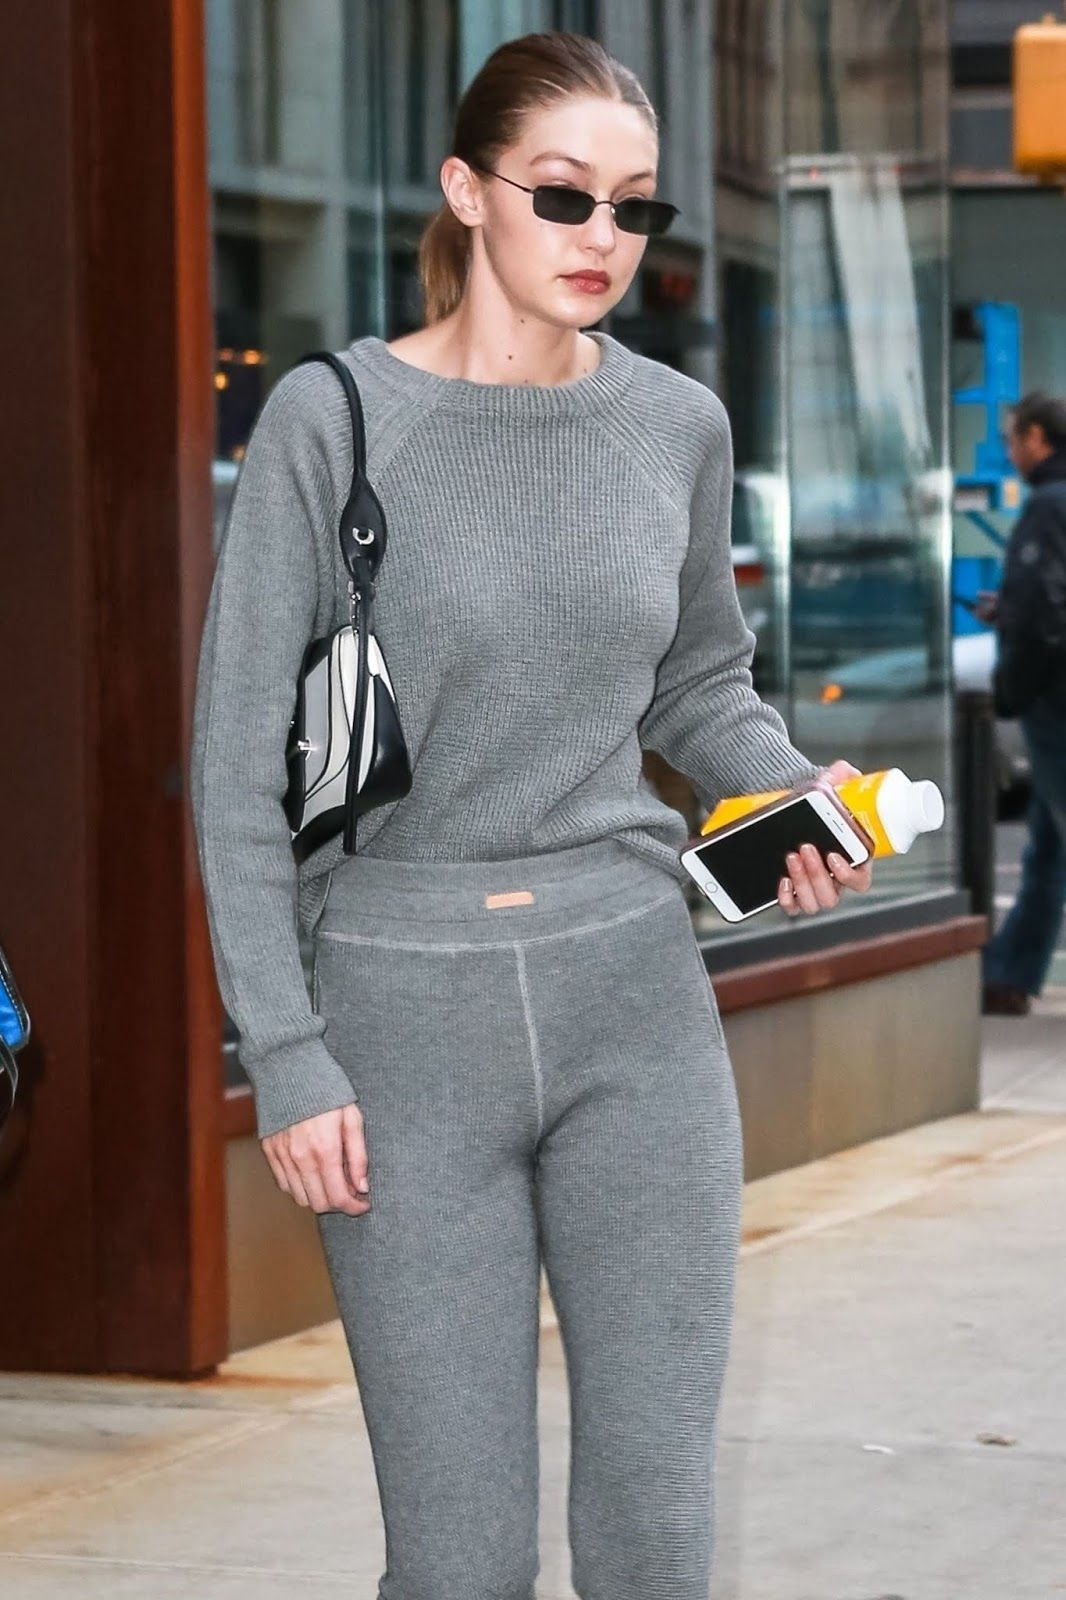 6bf030ae12b58 Gigi Hadid - Out and about in NYC - 02 05 2019